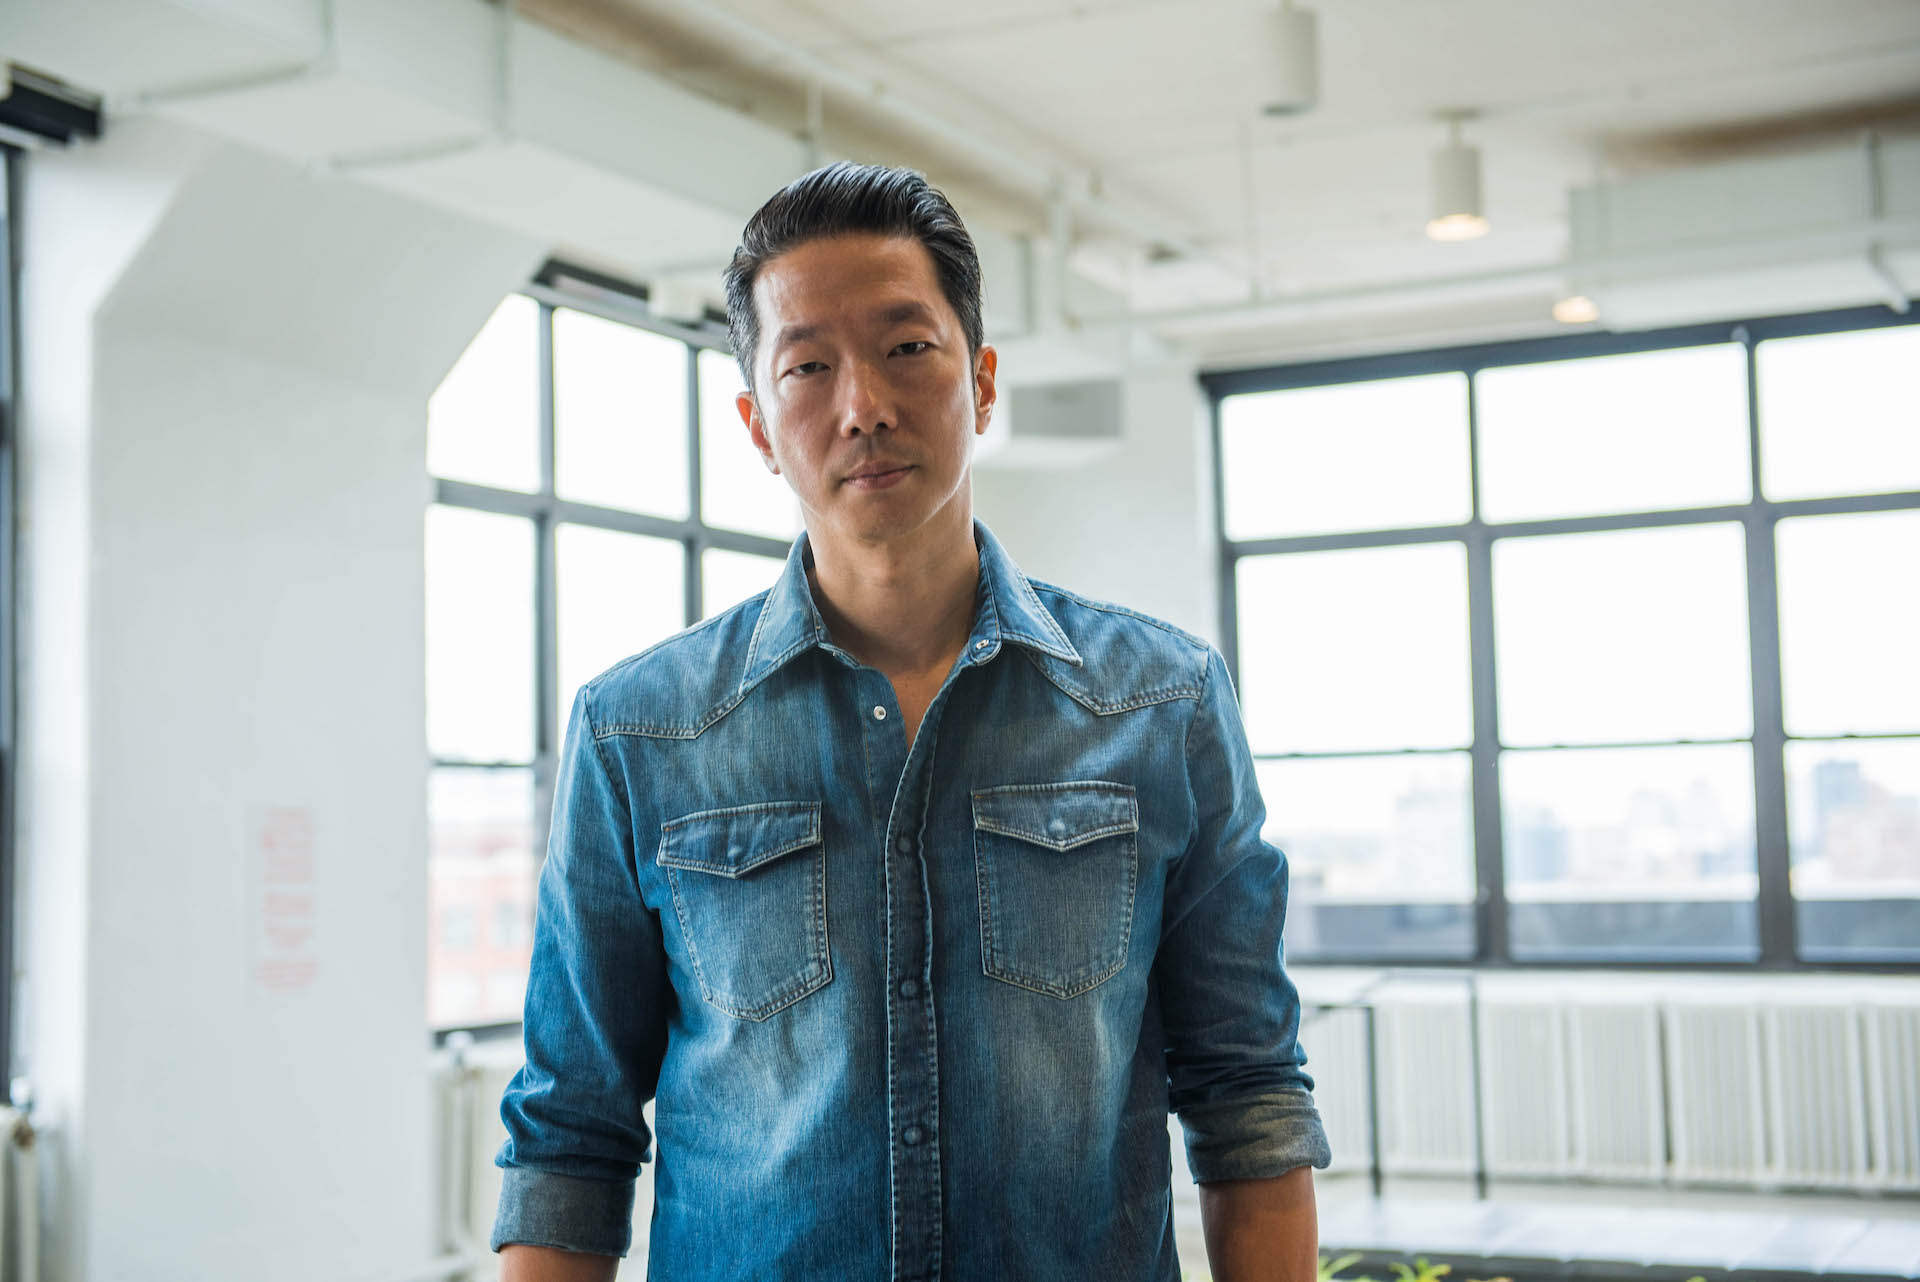 Giant Robot interviews David Lee at the Squarespace headquarters in Greenwich Village, New York City.